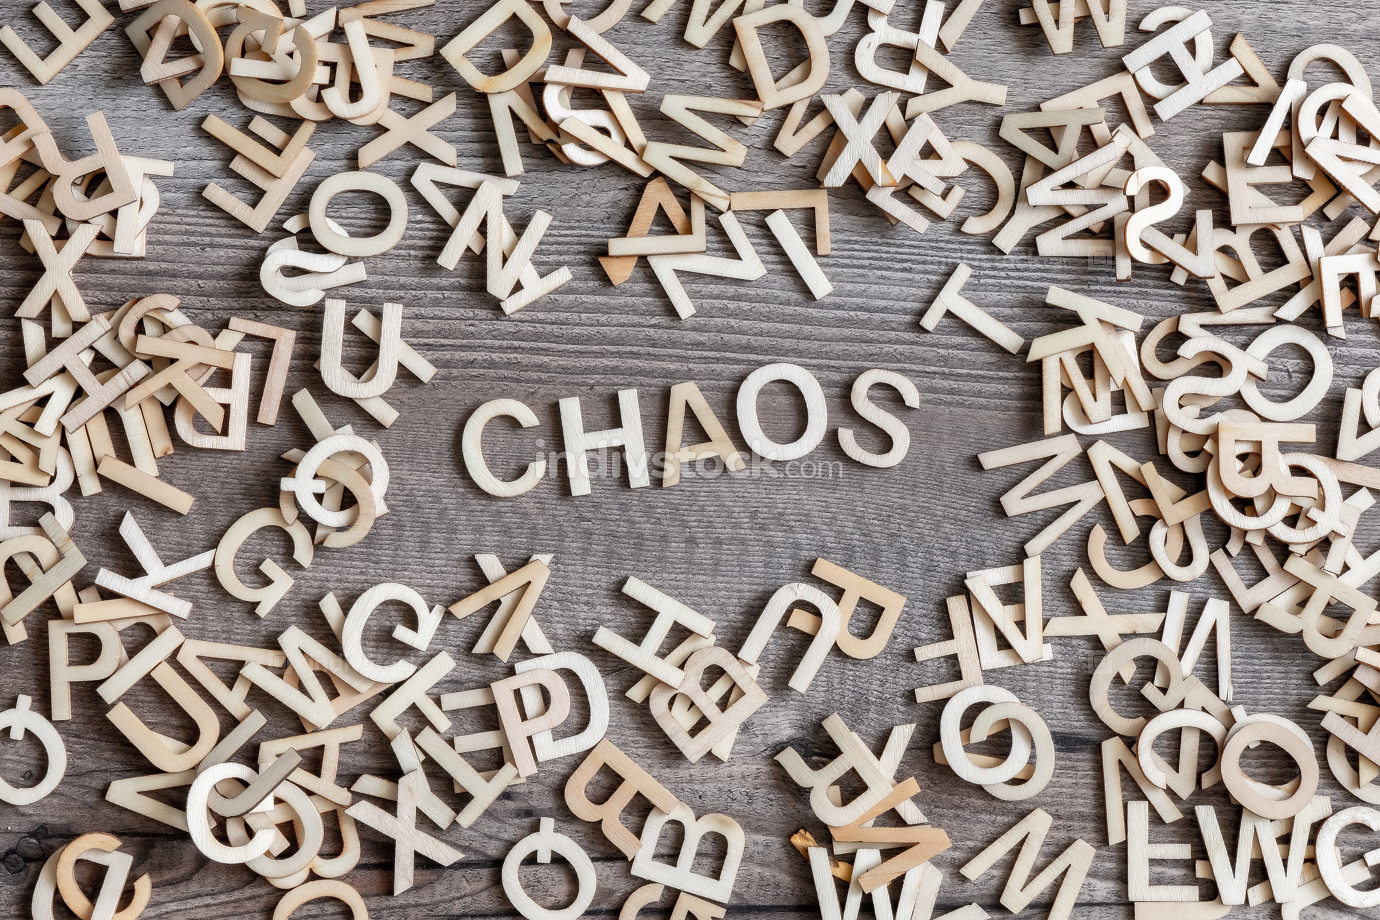 some wooden letters and the word chaos